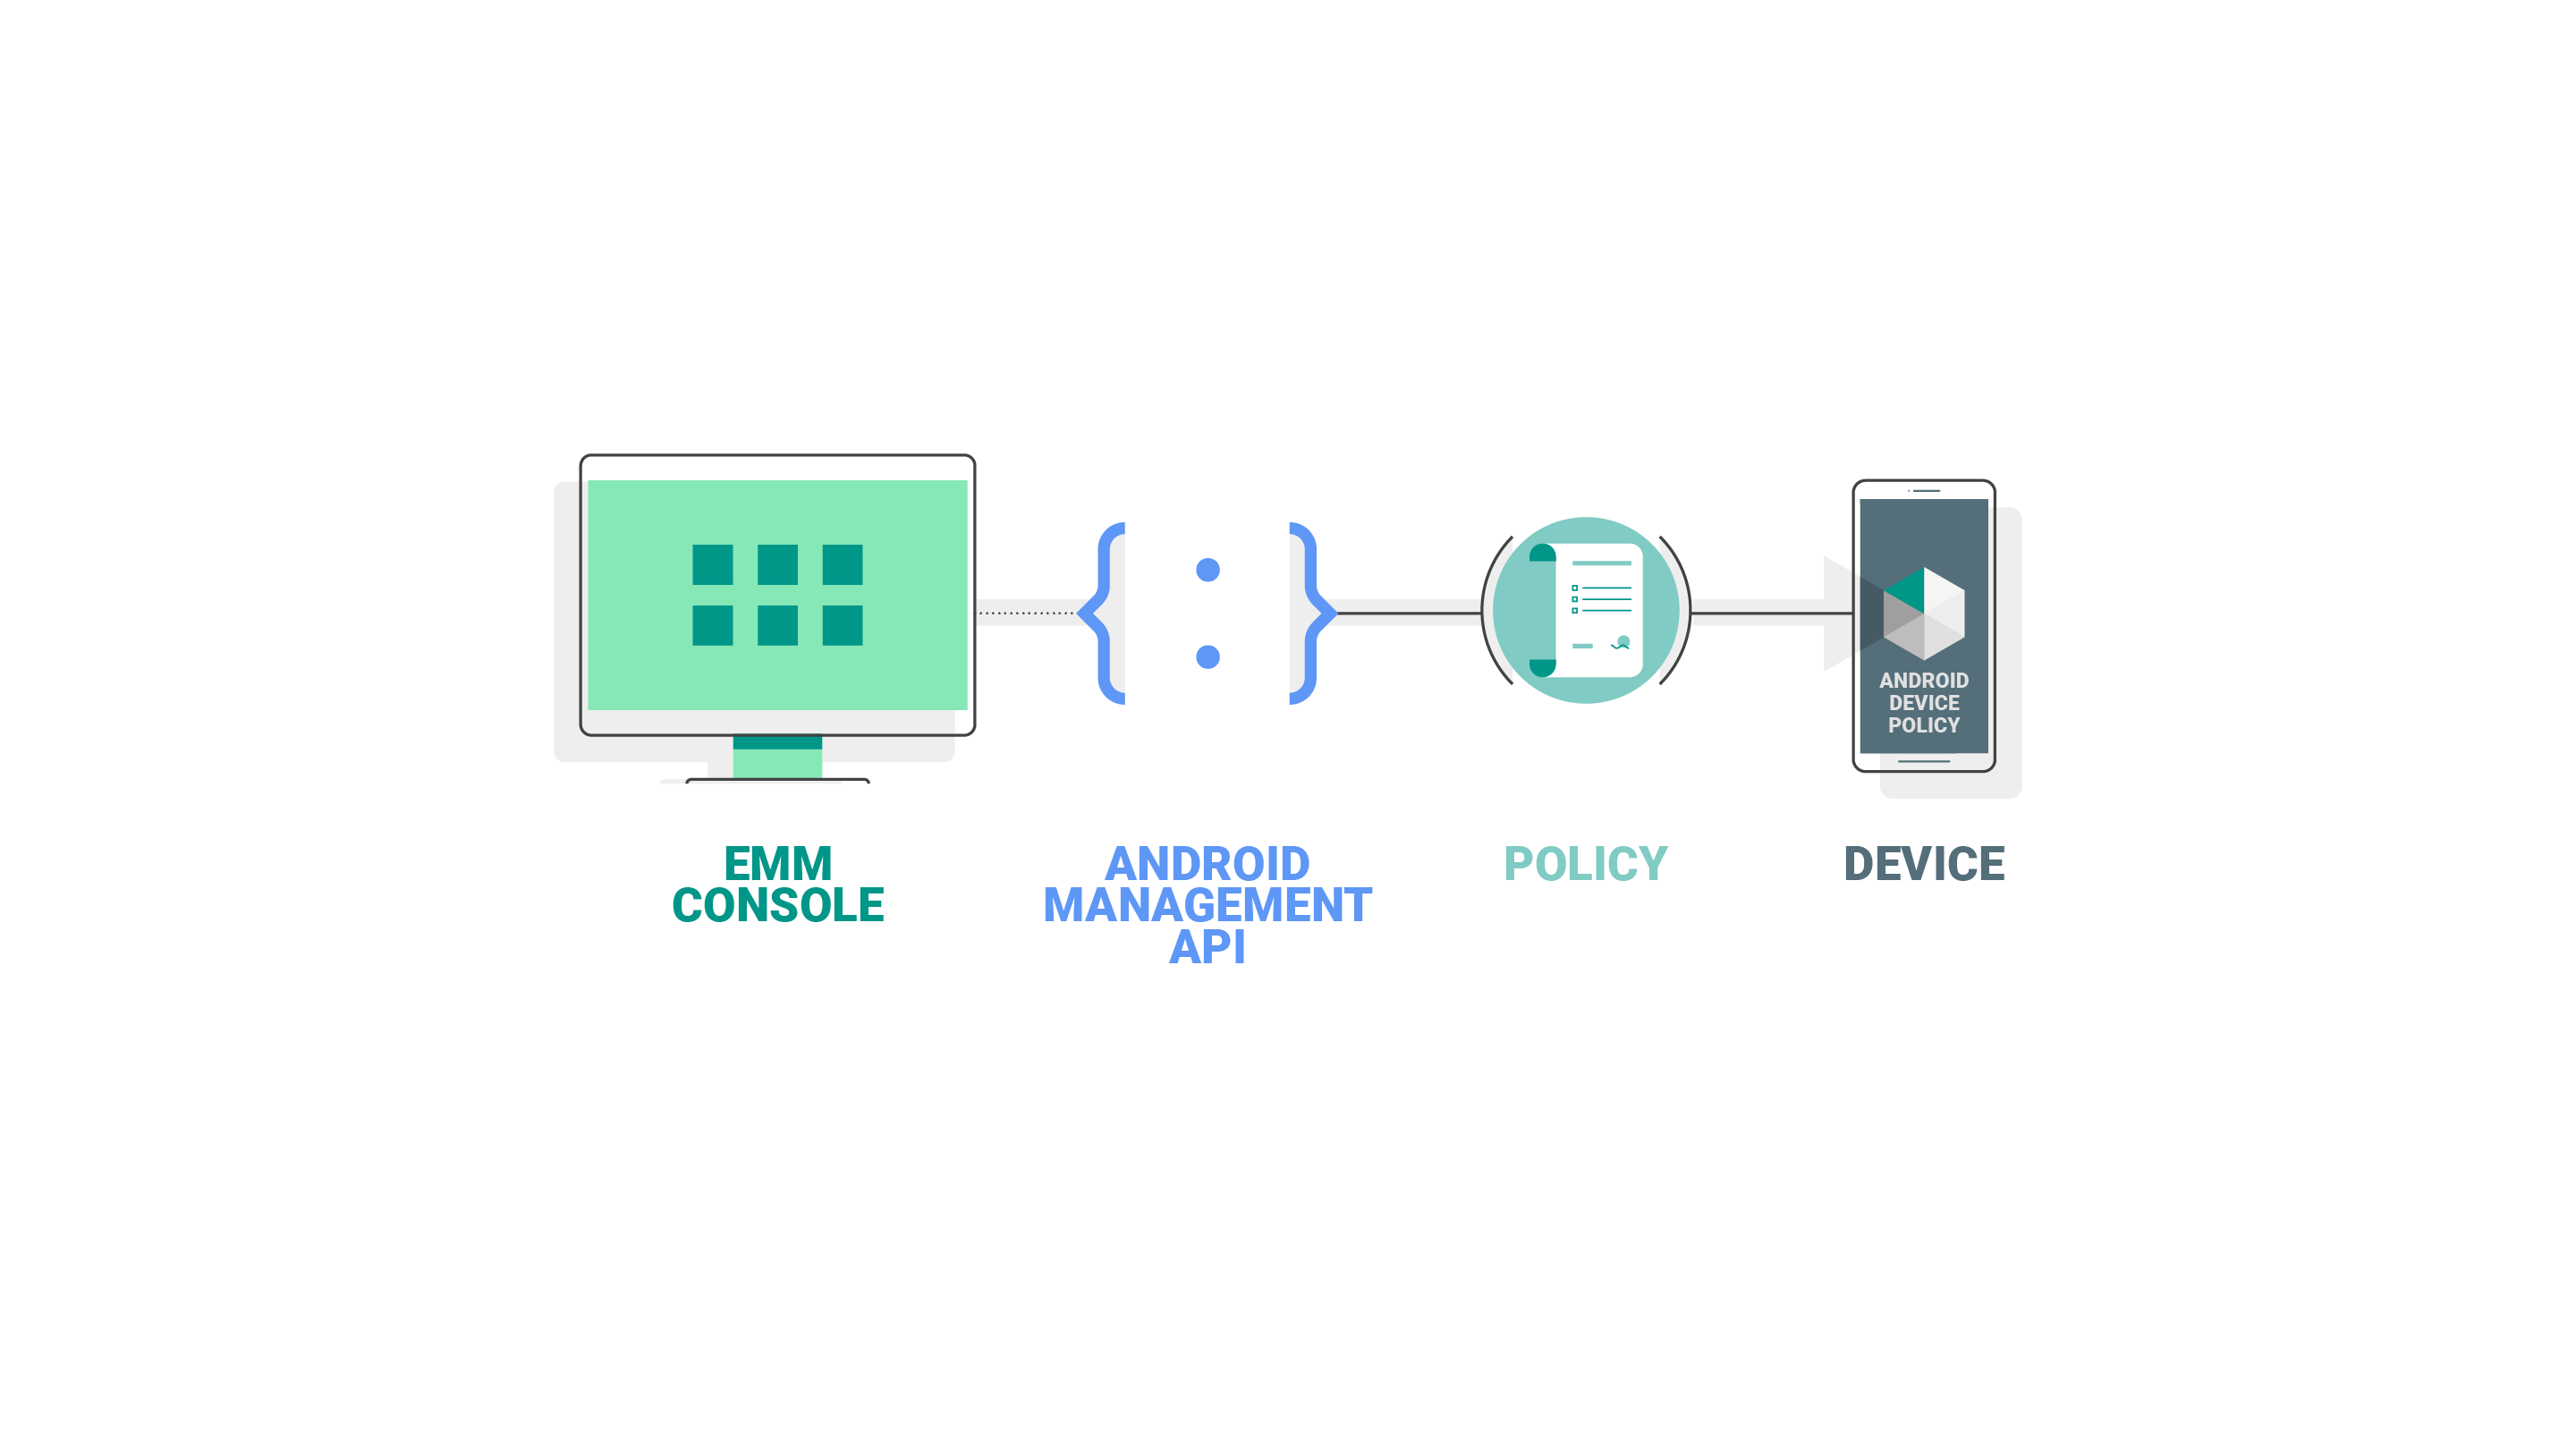 New Android Management API delivers simple, powerful tools